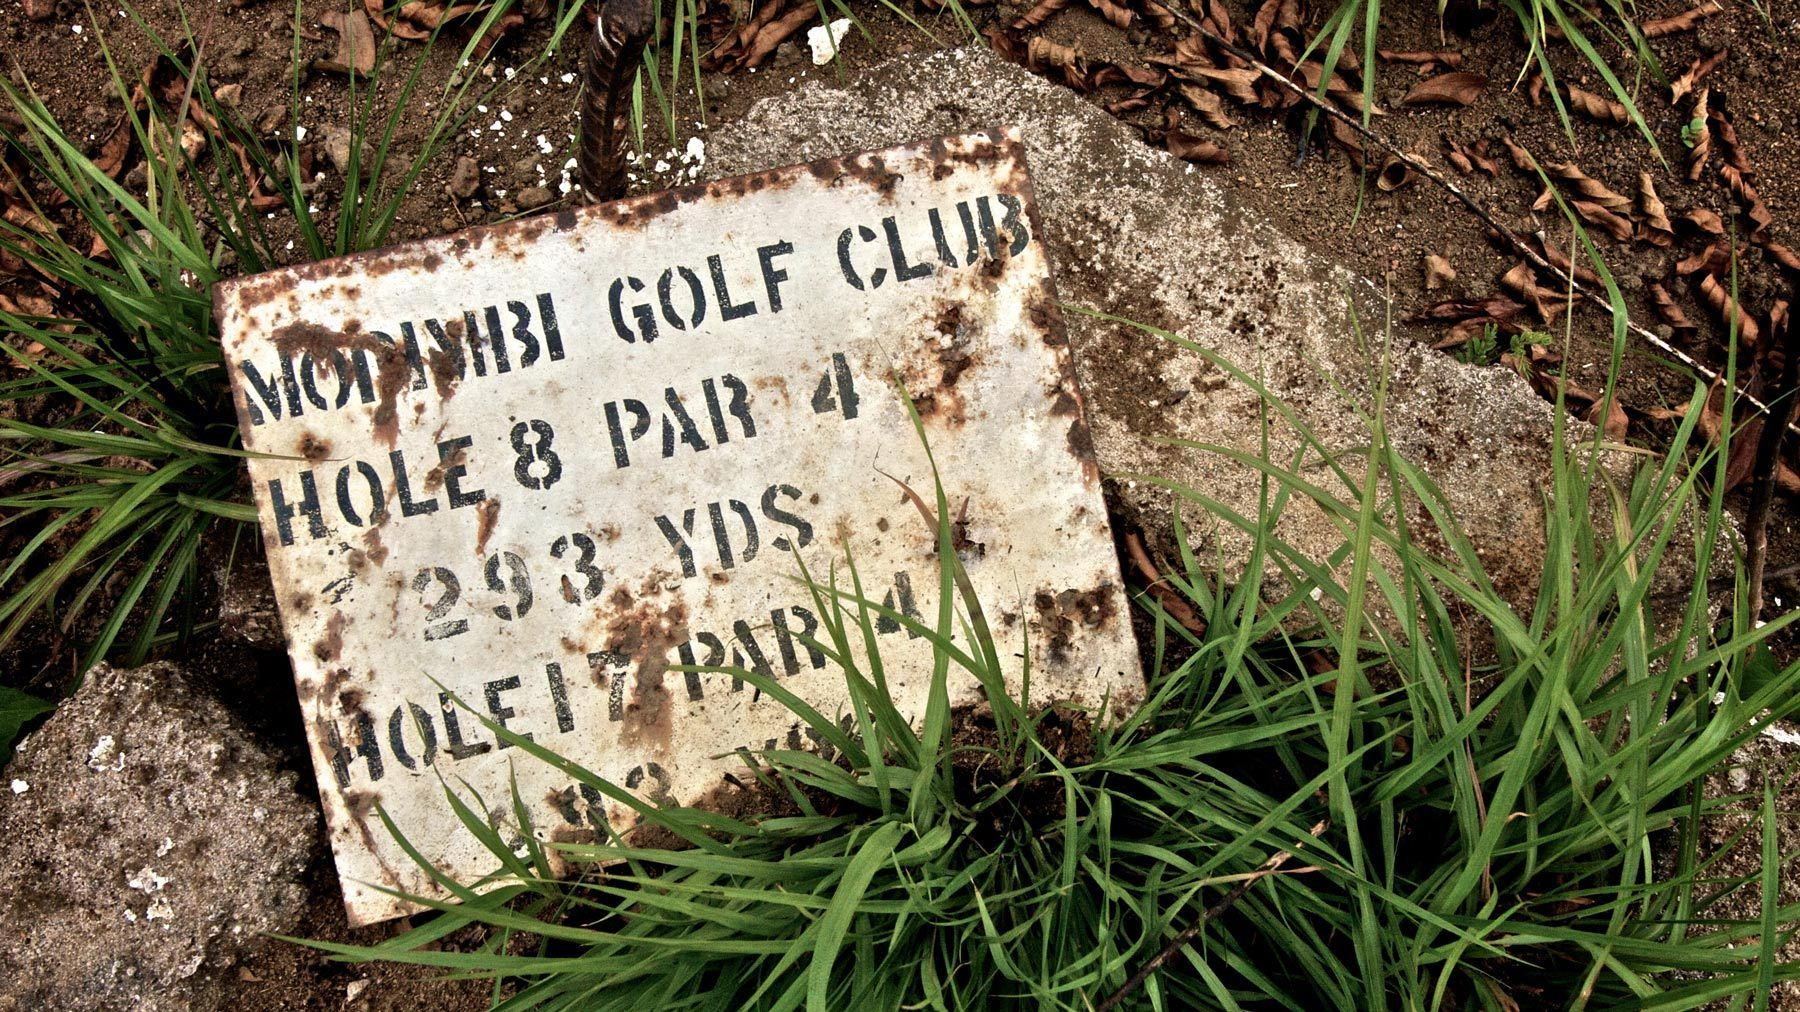 1mobimbi_golf_club_abandoned_golf_course_sierra_leone.jpg